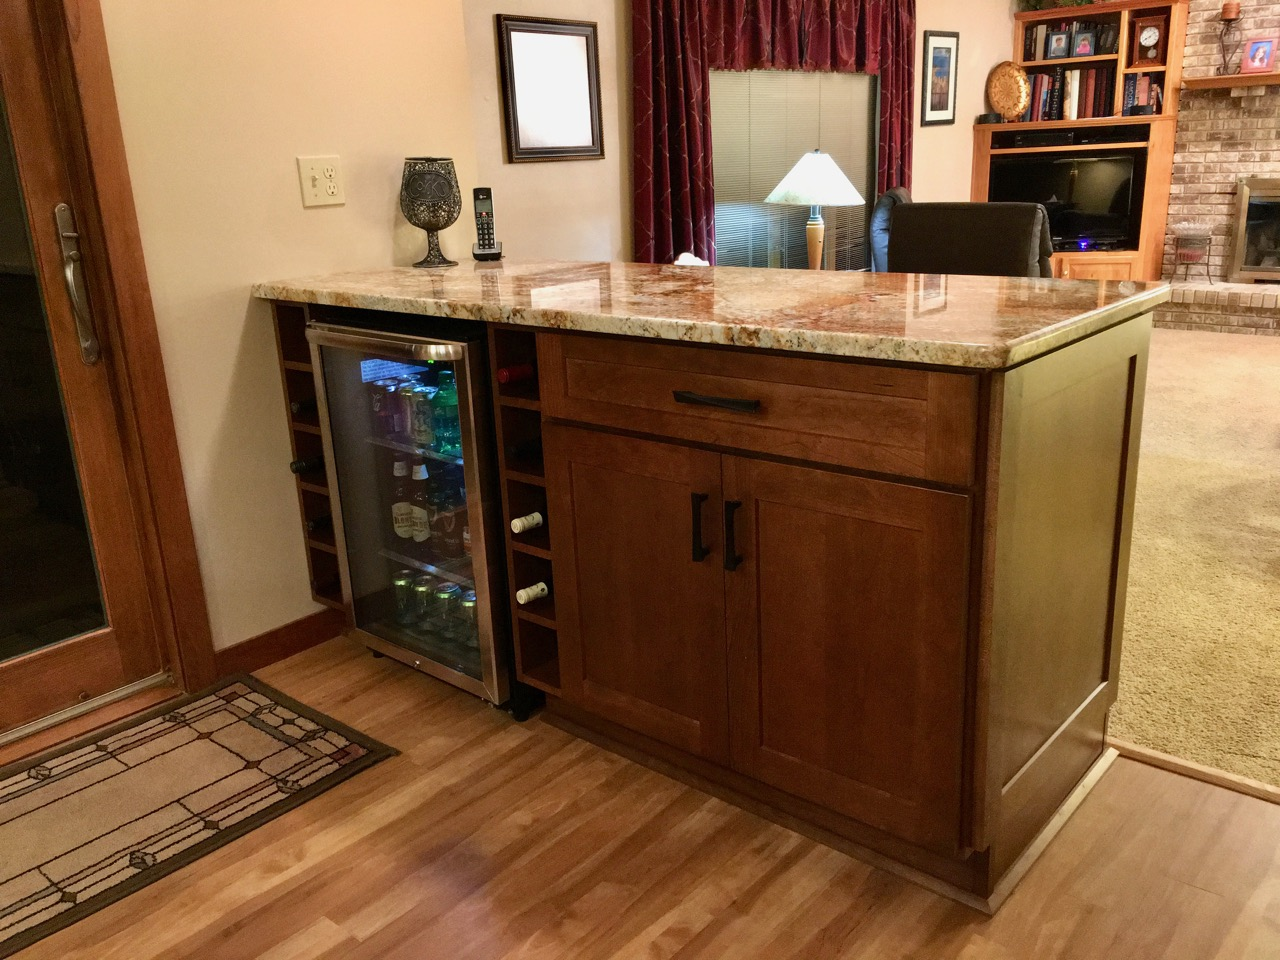 Cherry beverage bar separates kitchen and family room